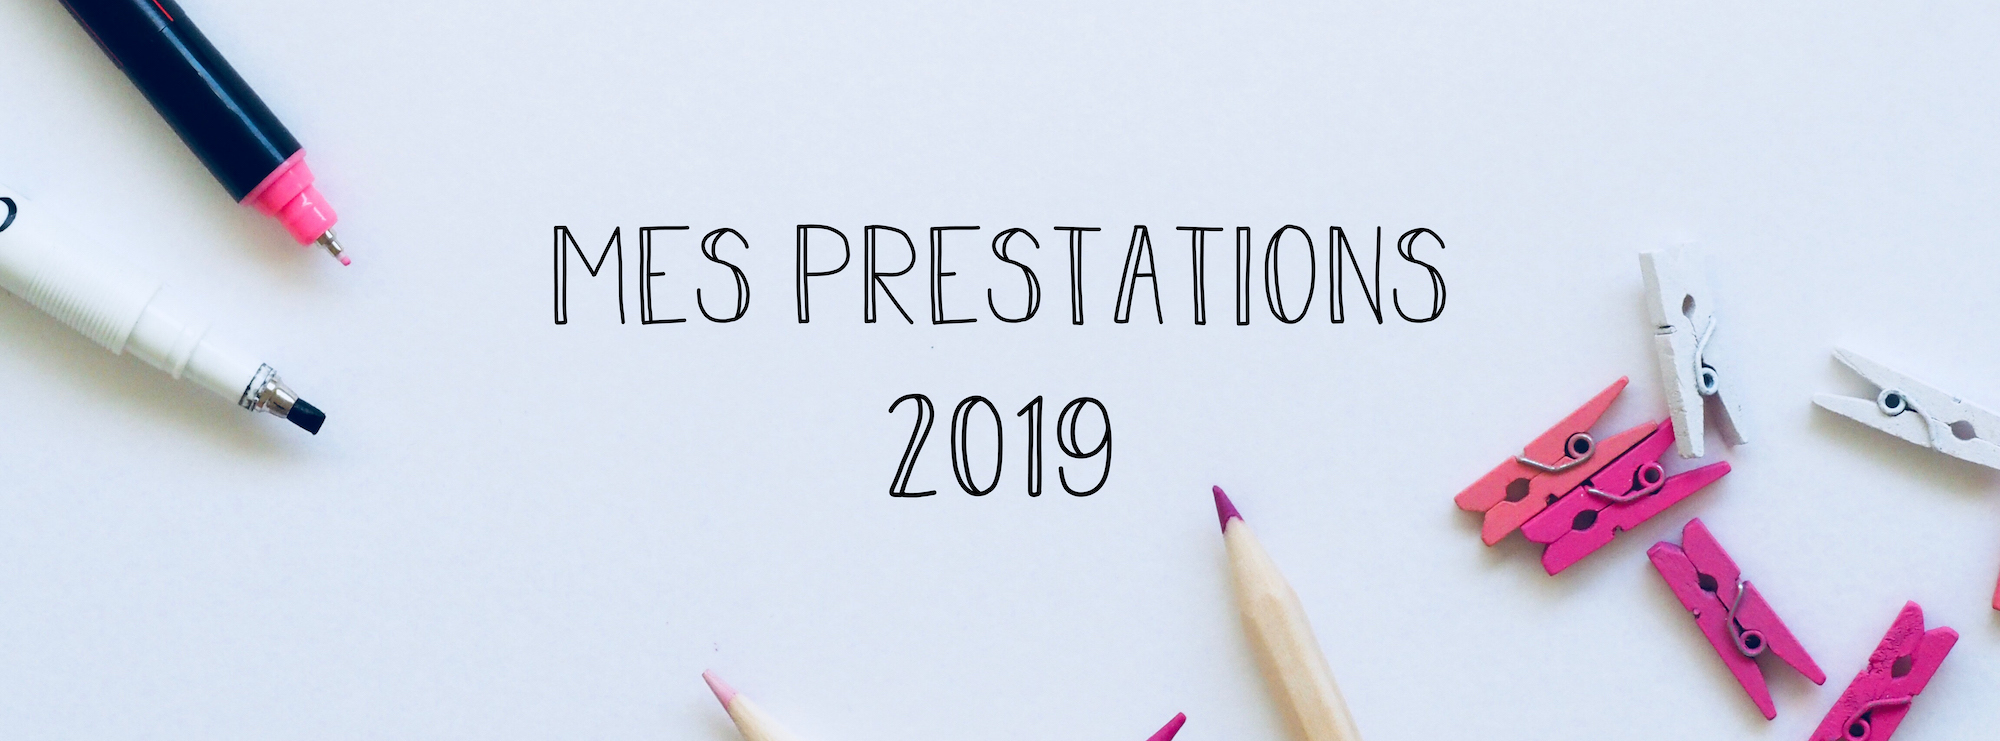 Travailler avec moi - PRESTATIONS 2019 - The Bright Side